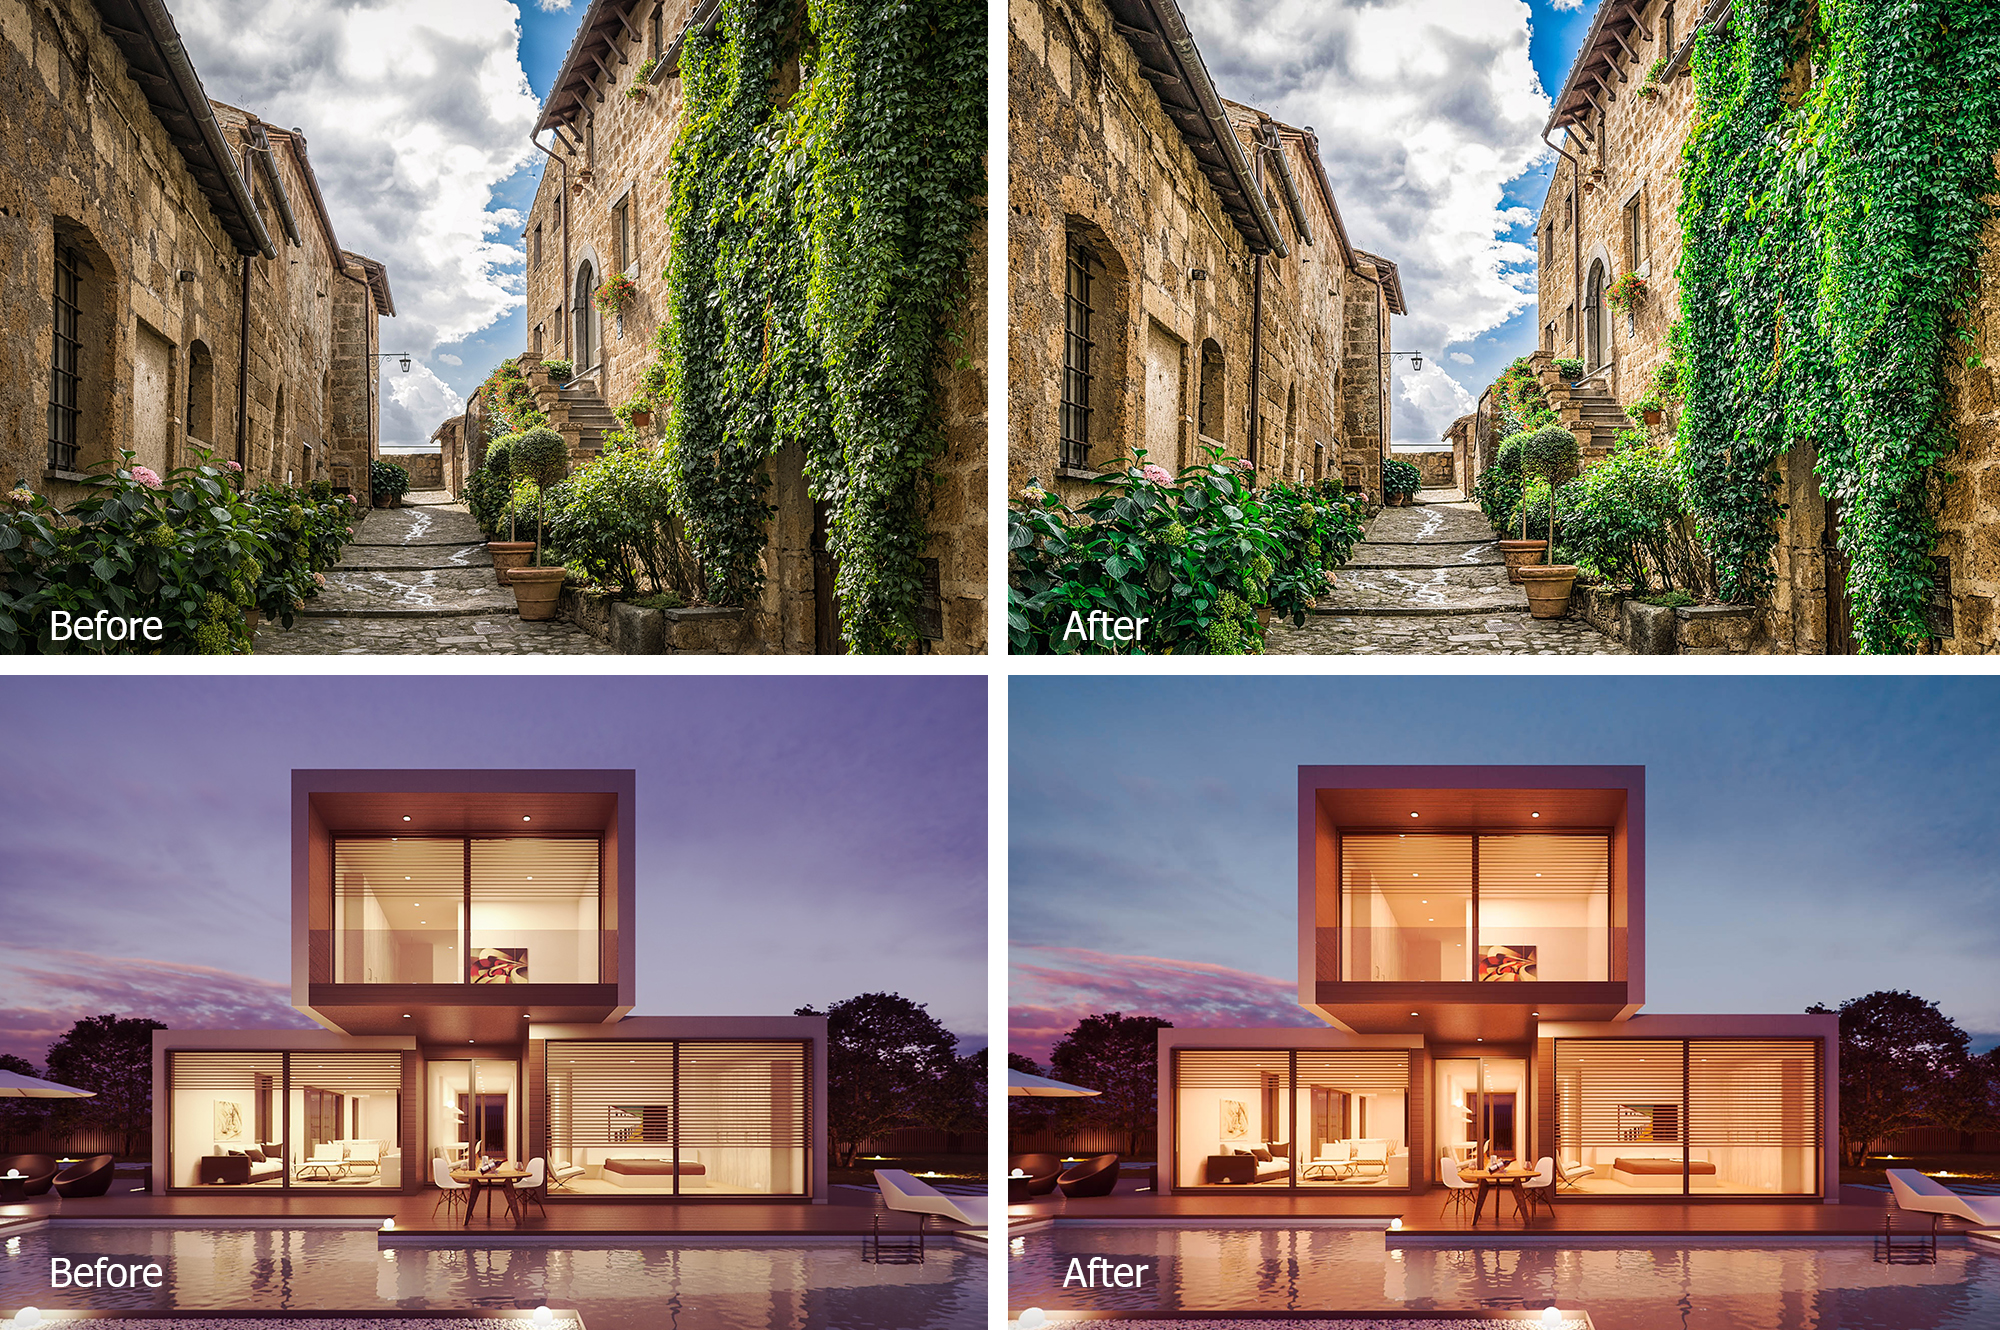 Architecture Lr Presets example image 2